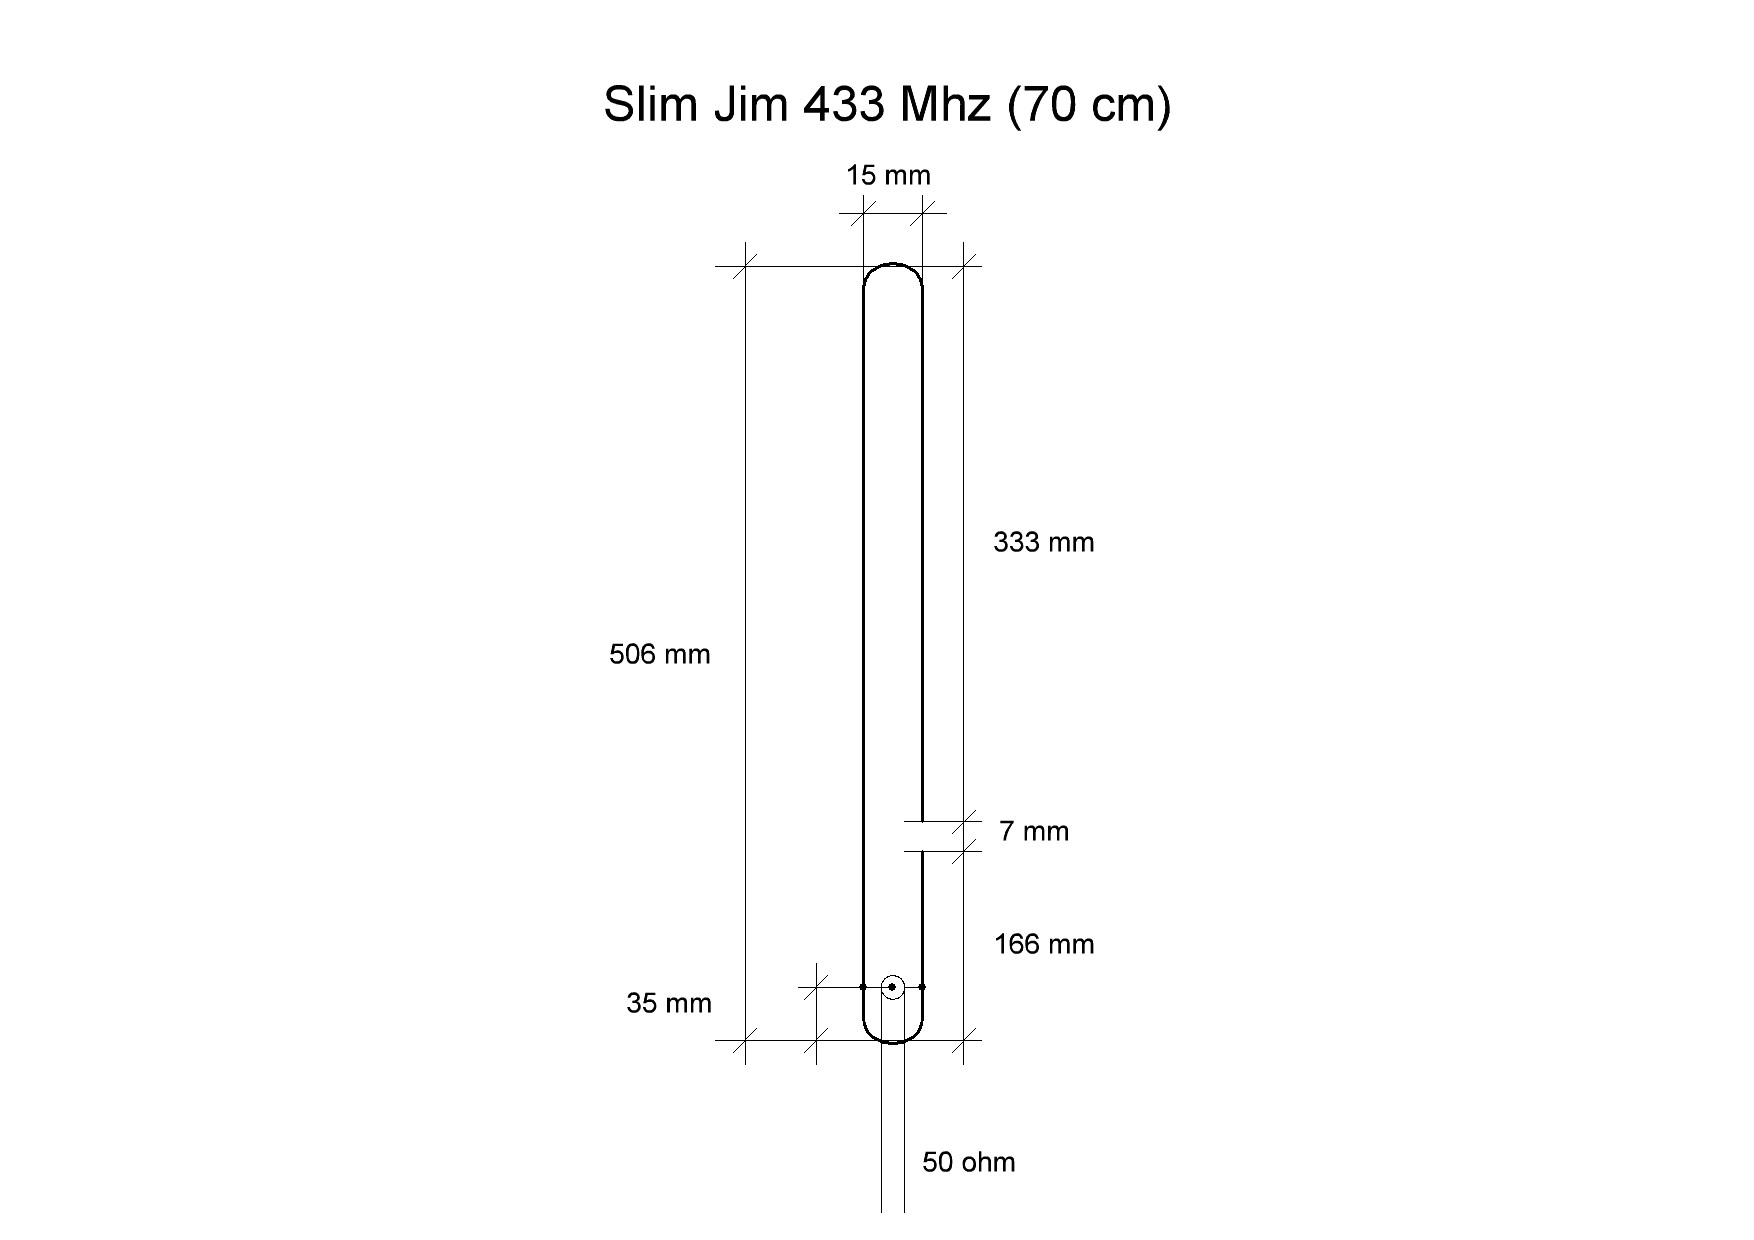 Slim Jim antenna for 433 MHz